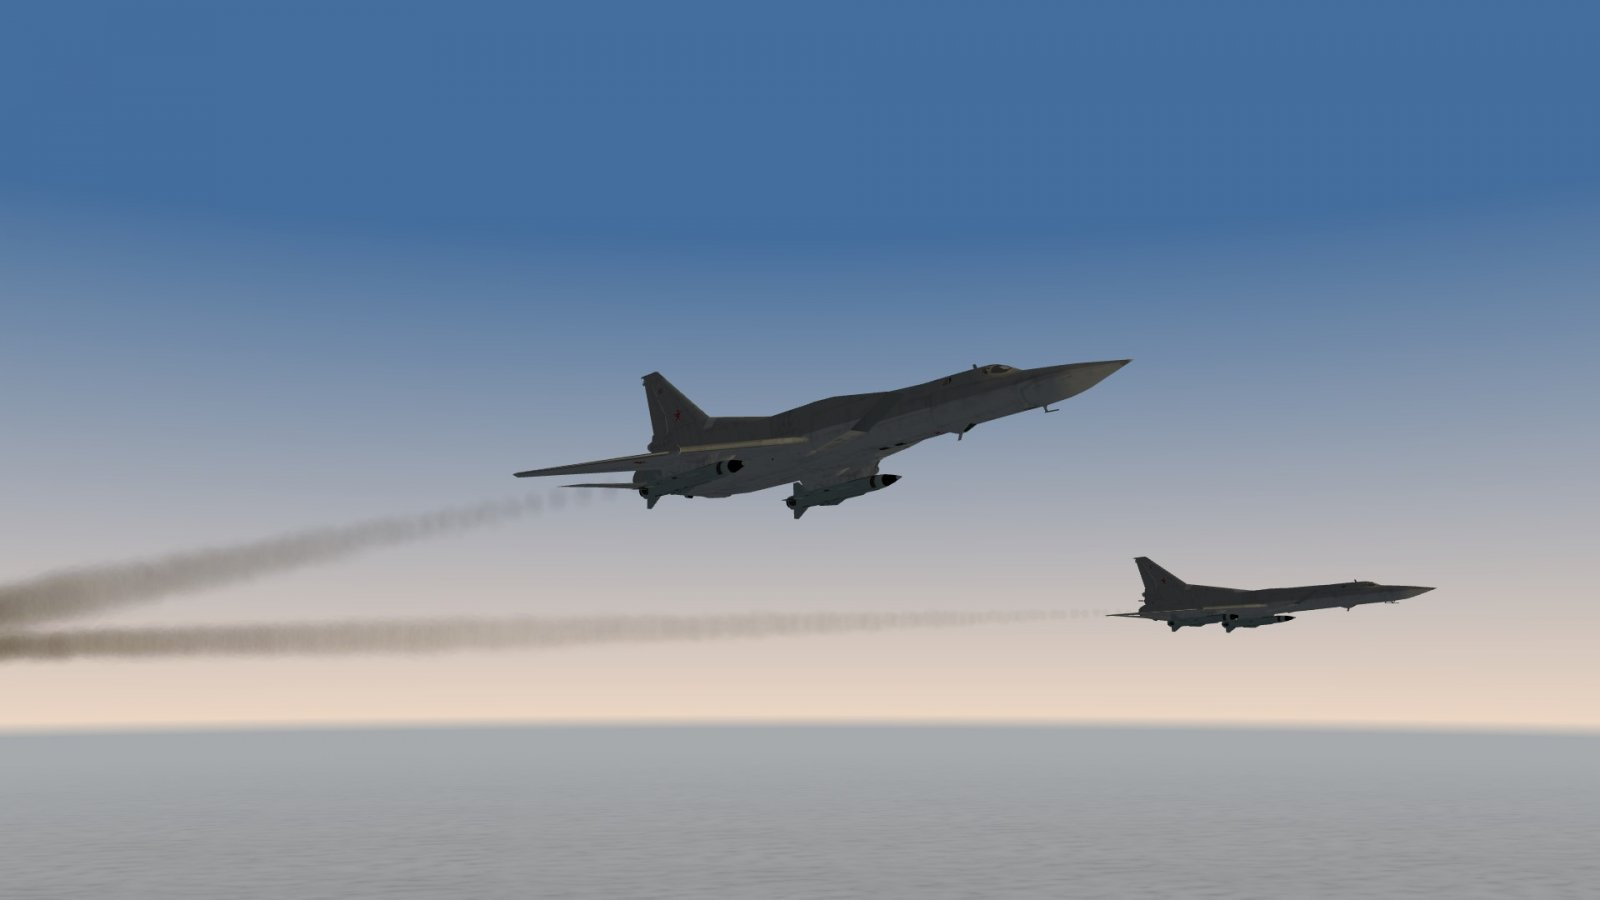 Two Tu-22M3 Backfires Flying High